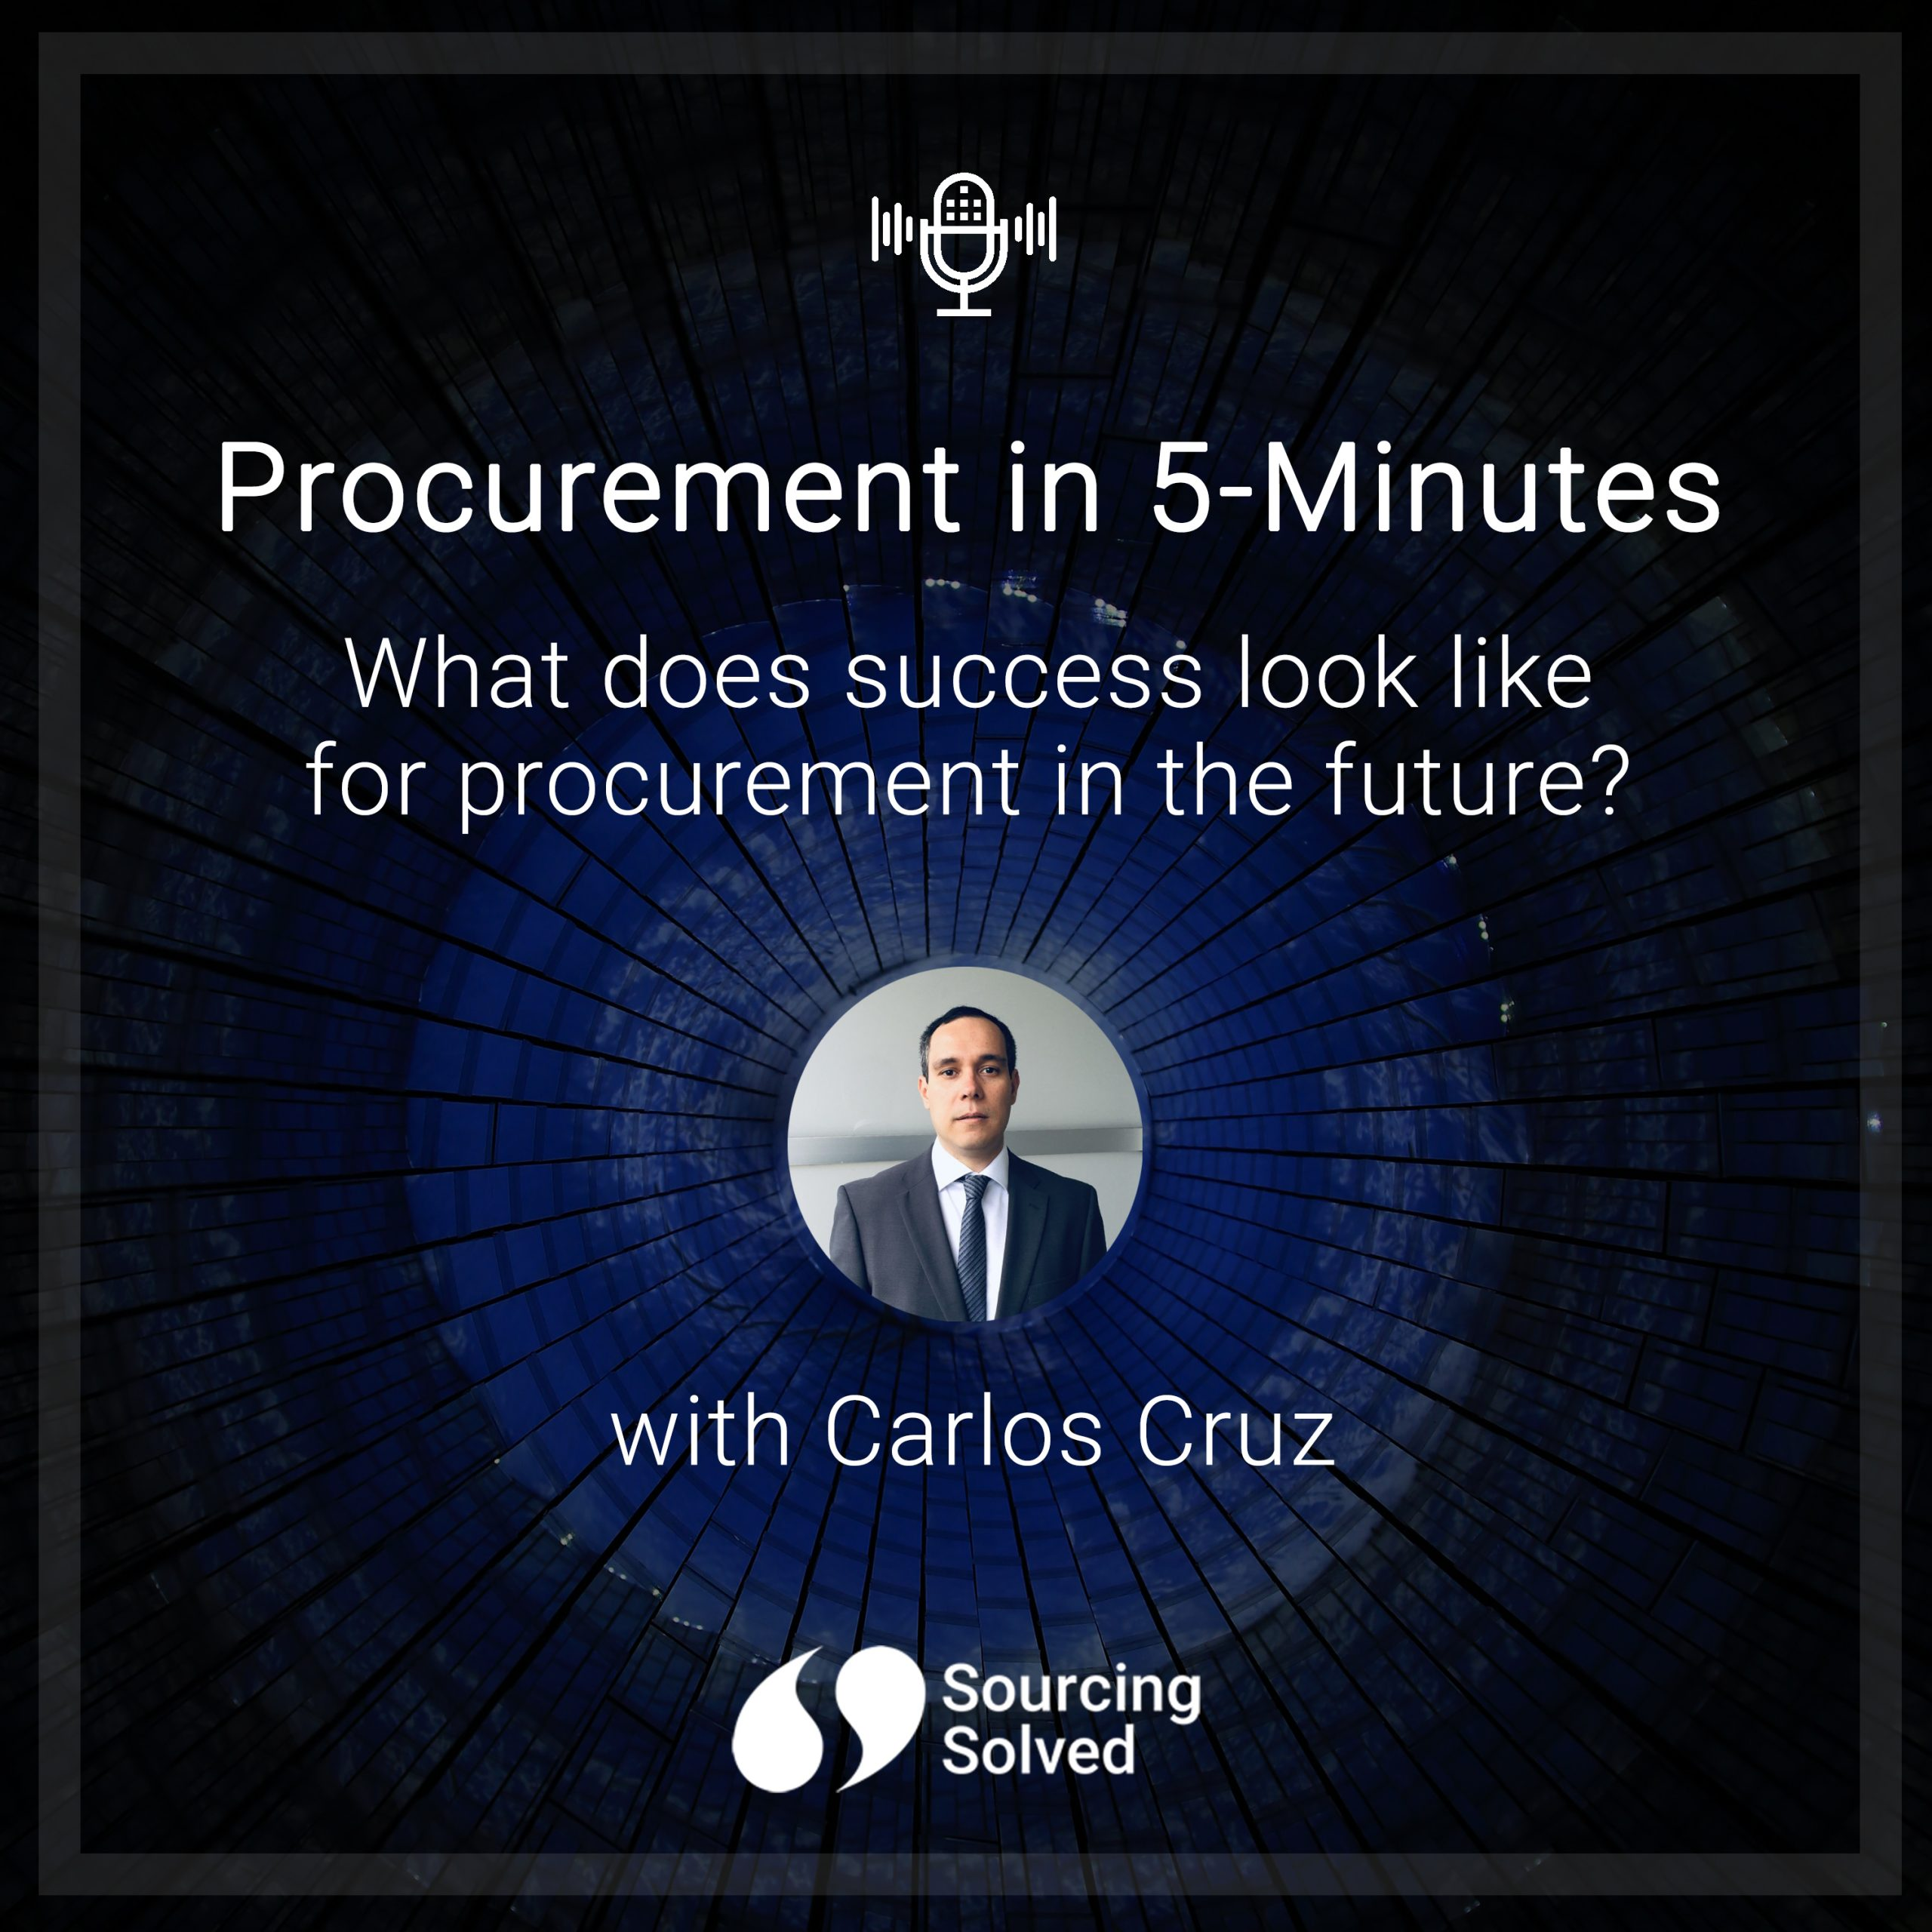 Procurement in 5-Minutes: What does success look like for procurement in the future?